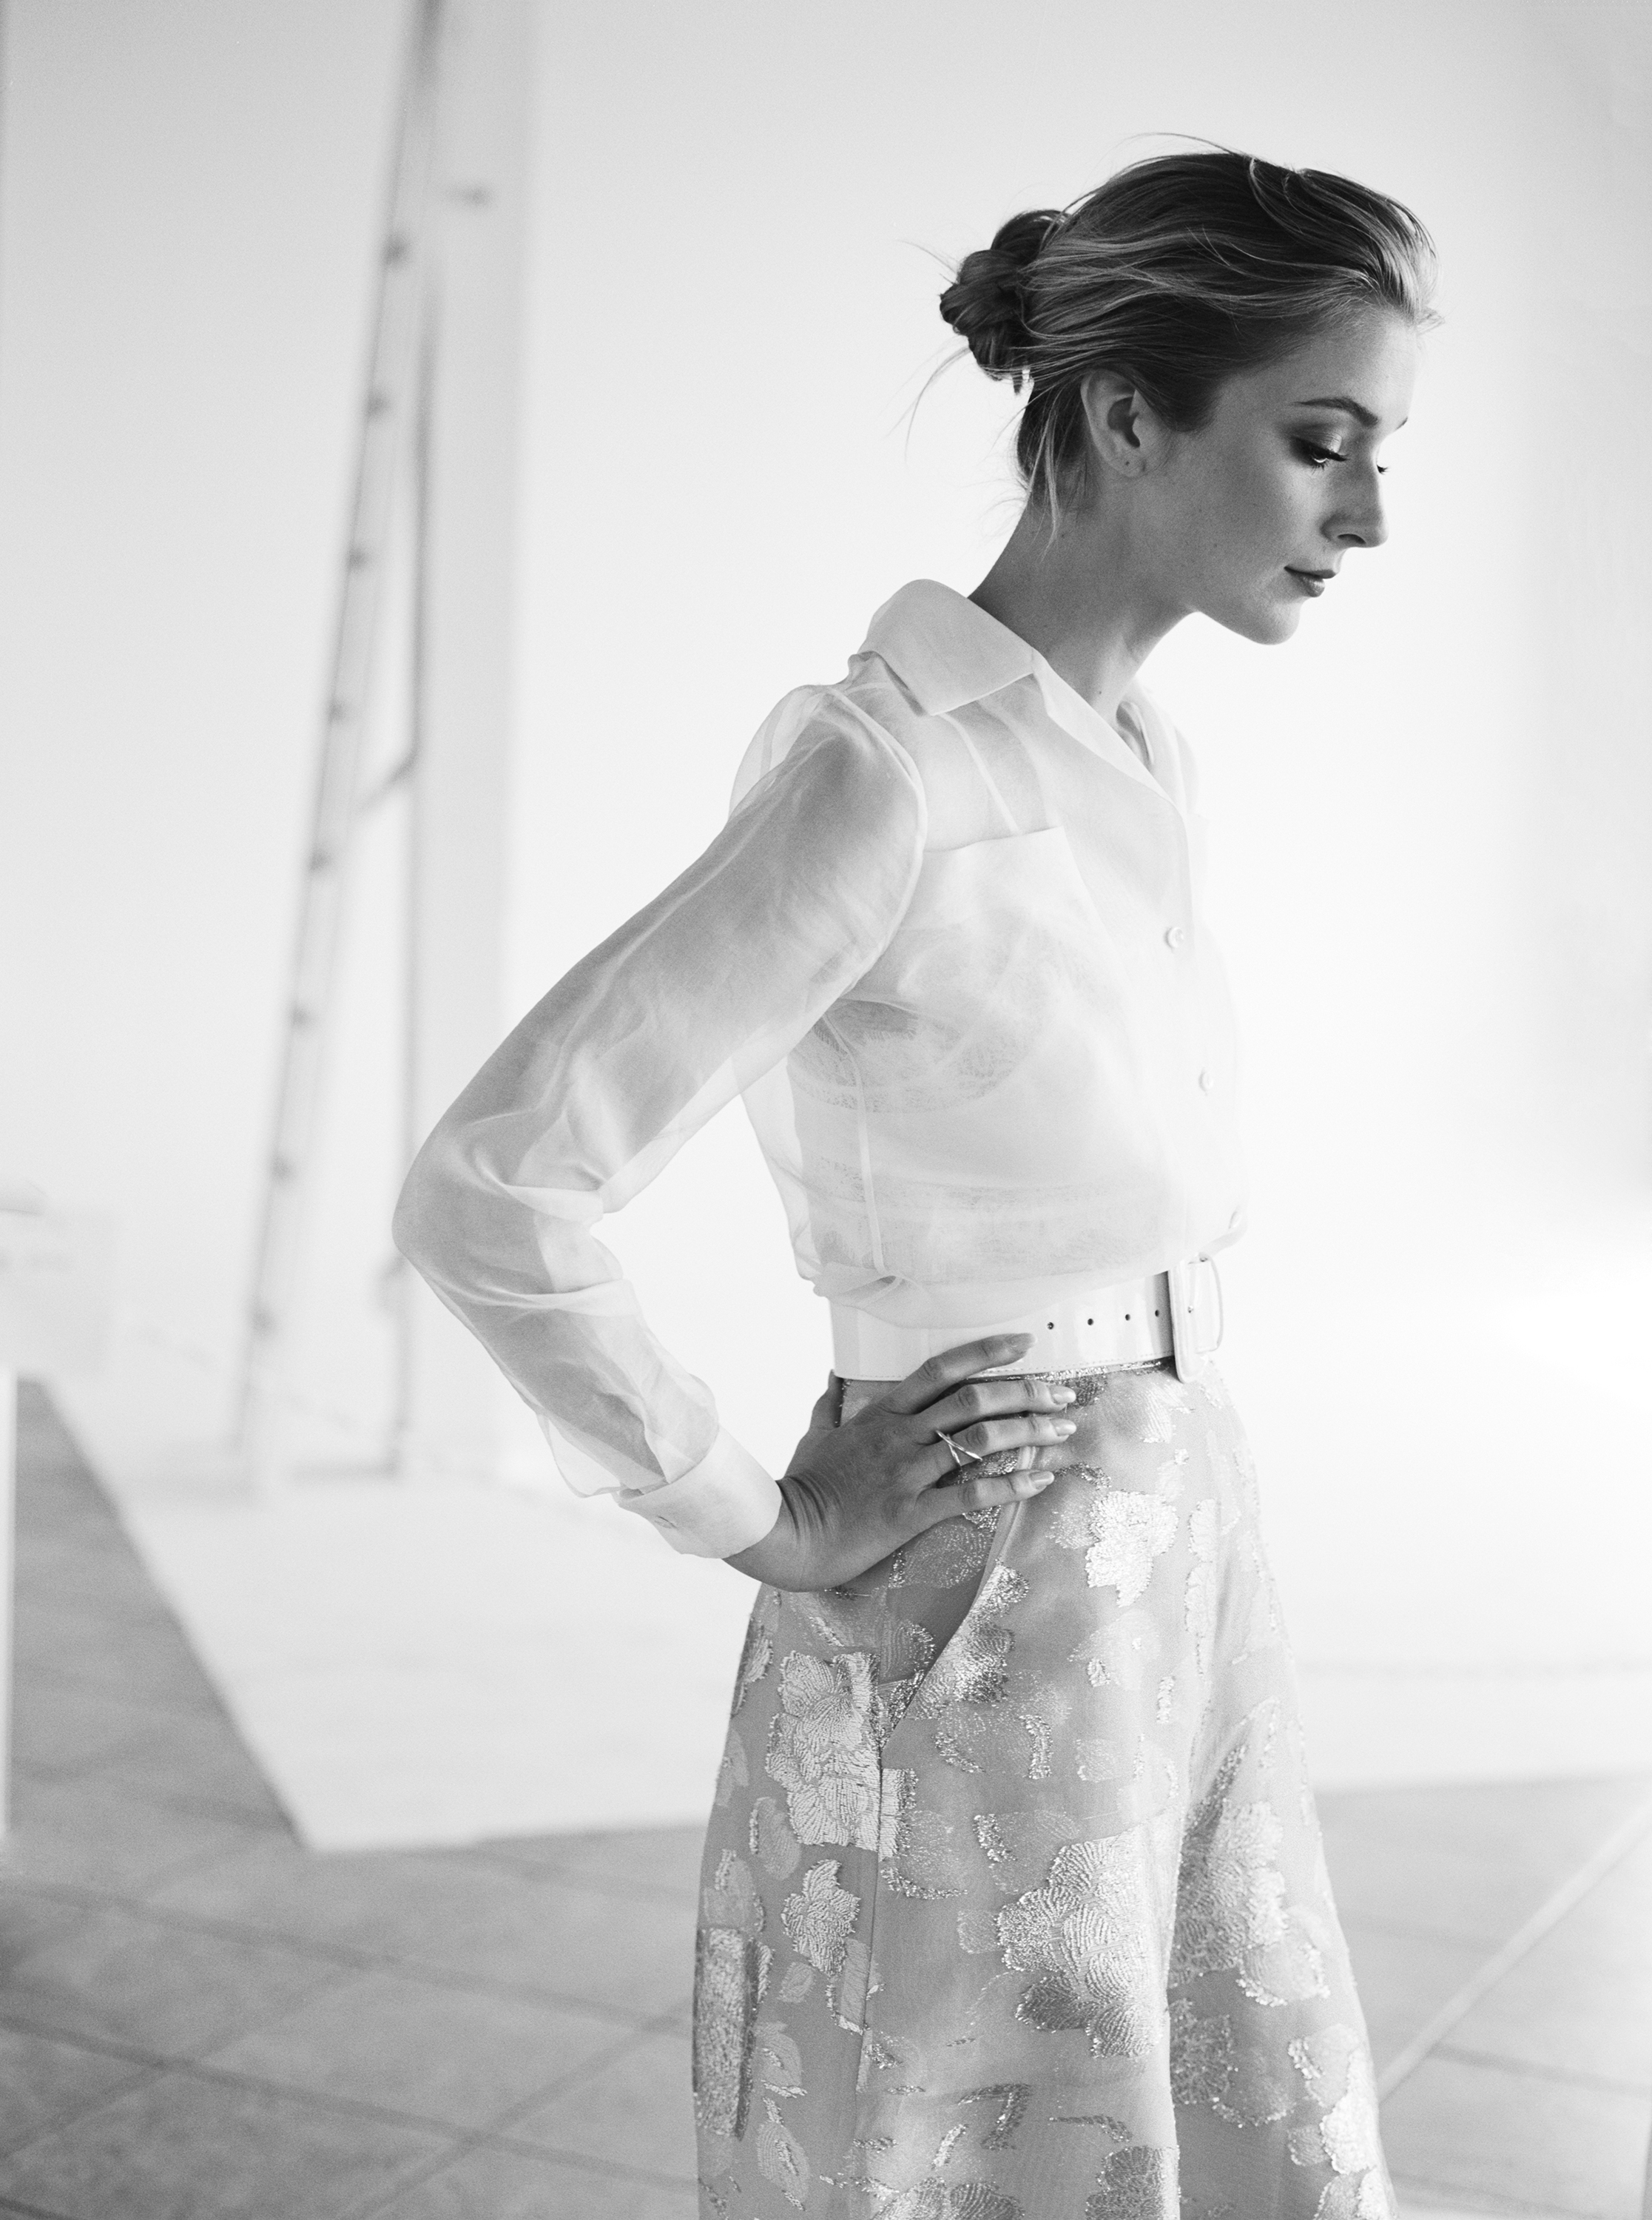 Shirt, skirt and belt by  THE 2ND SKIN CO.  ,Bra by  FOR LOVE AND LEMONS  ,Ring by  PSYCHE JEWELRY .